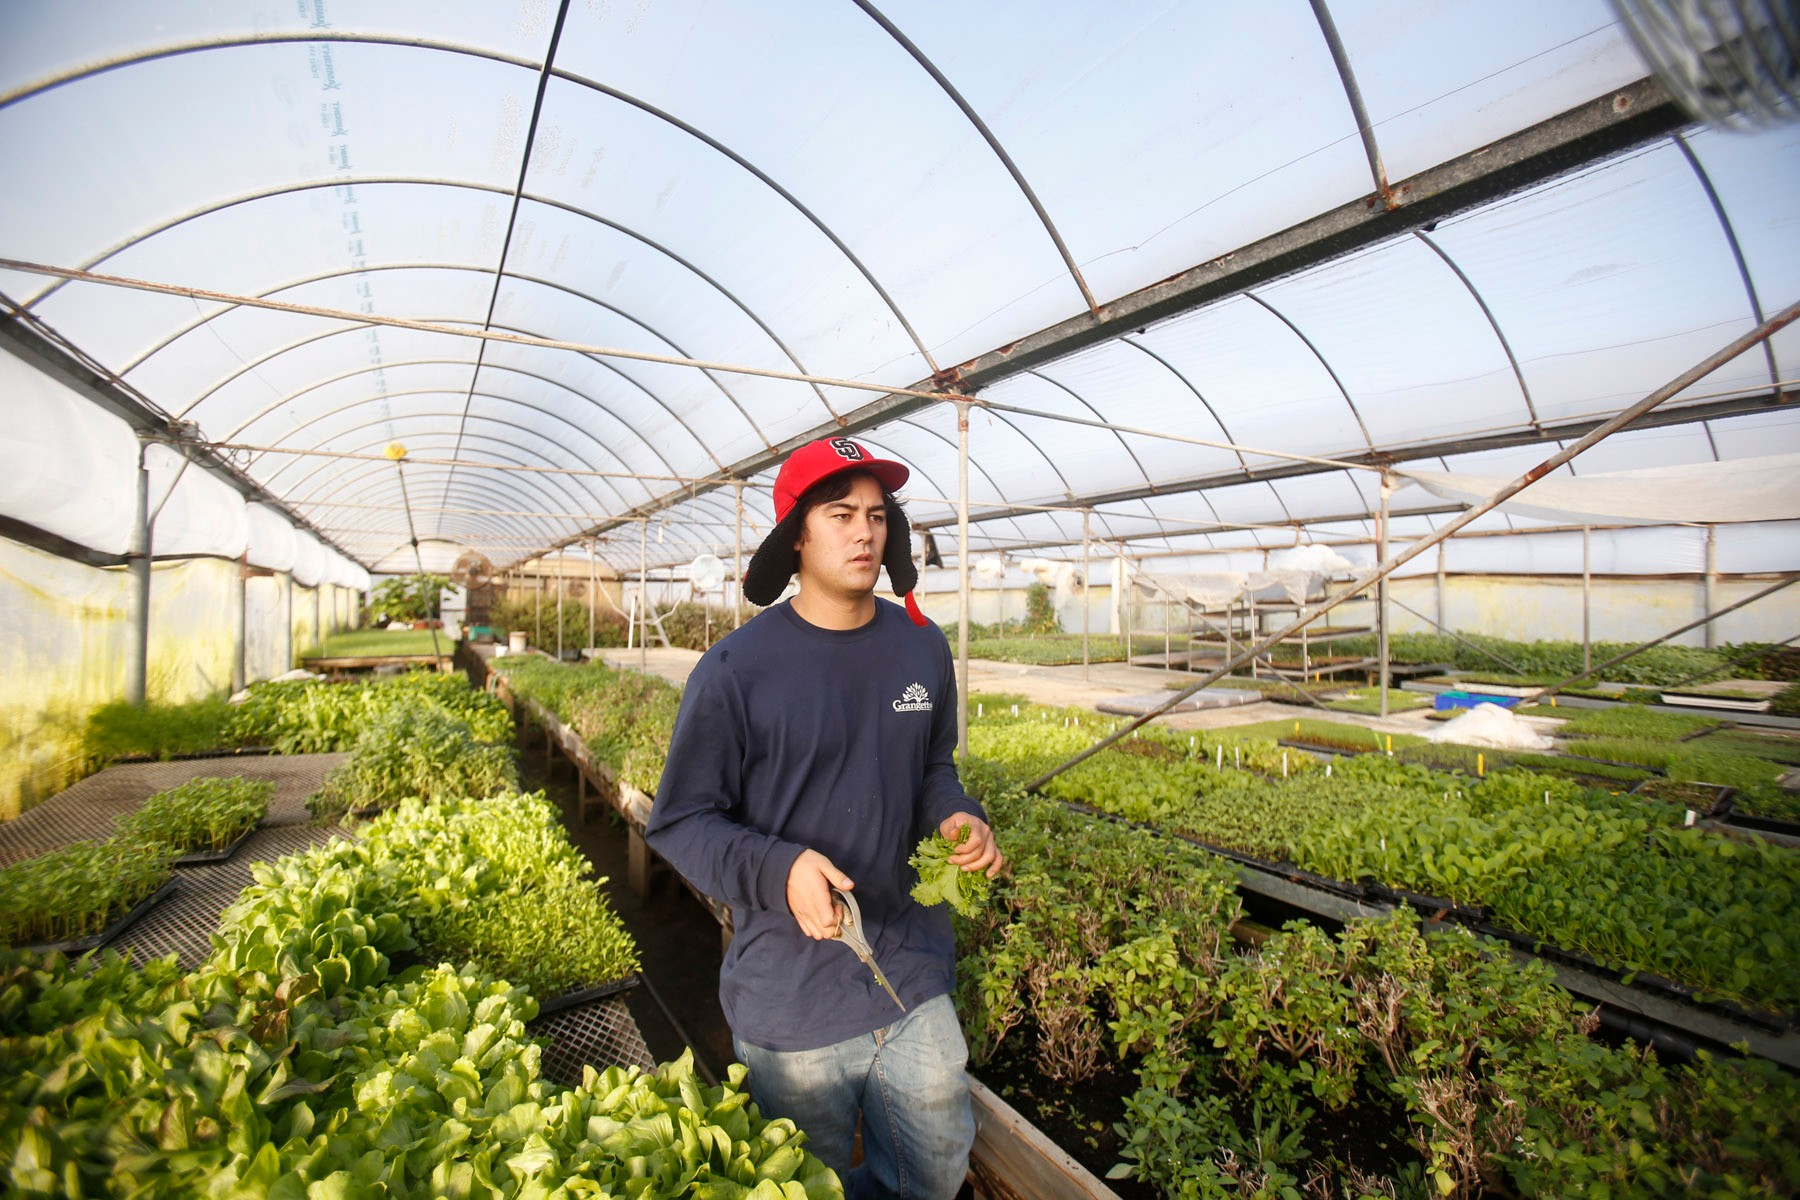 San Diego California, USA, December 13th 2016: | Chino Farms located in Rancho Santa. The farm is recognize and publicize for the high quality produce. Tom's son Makoto Chino picking plants from the green house. | (Alejandro Tamayo)